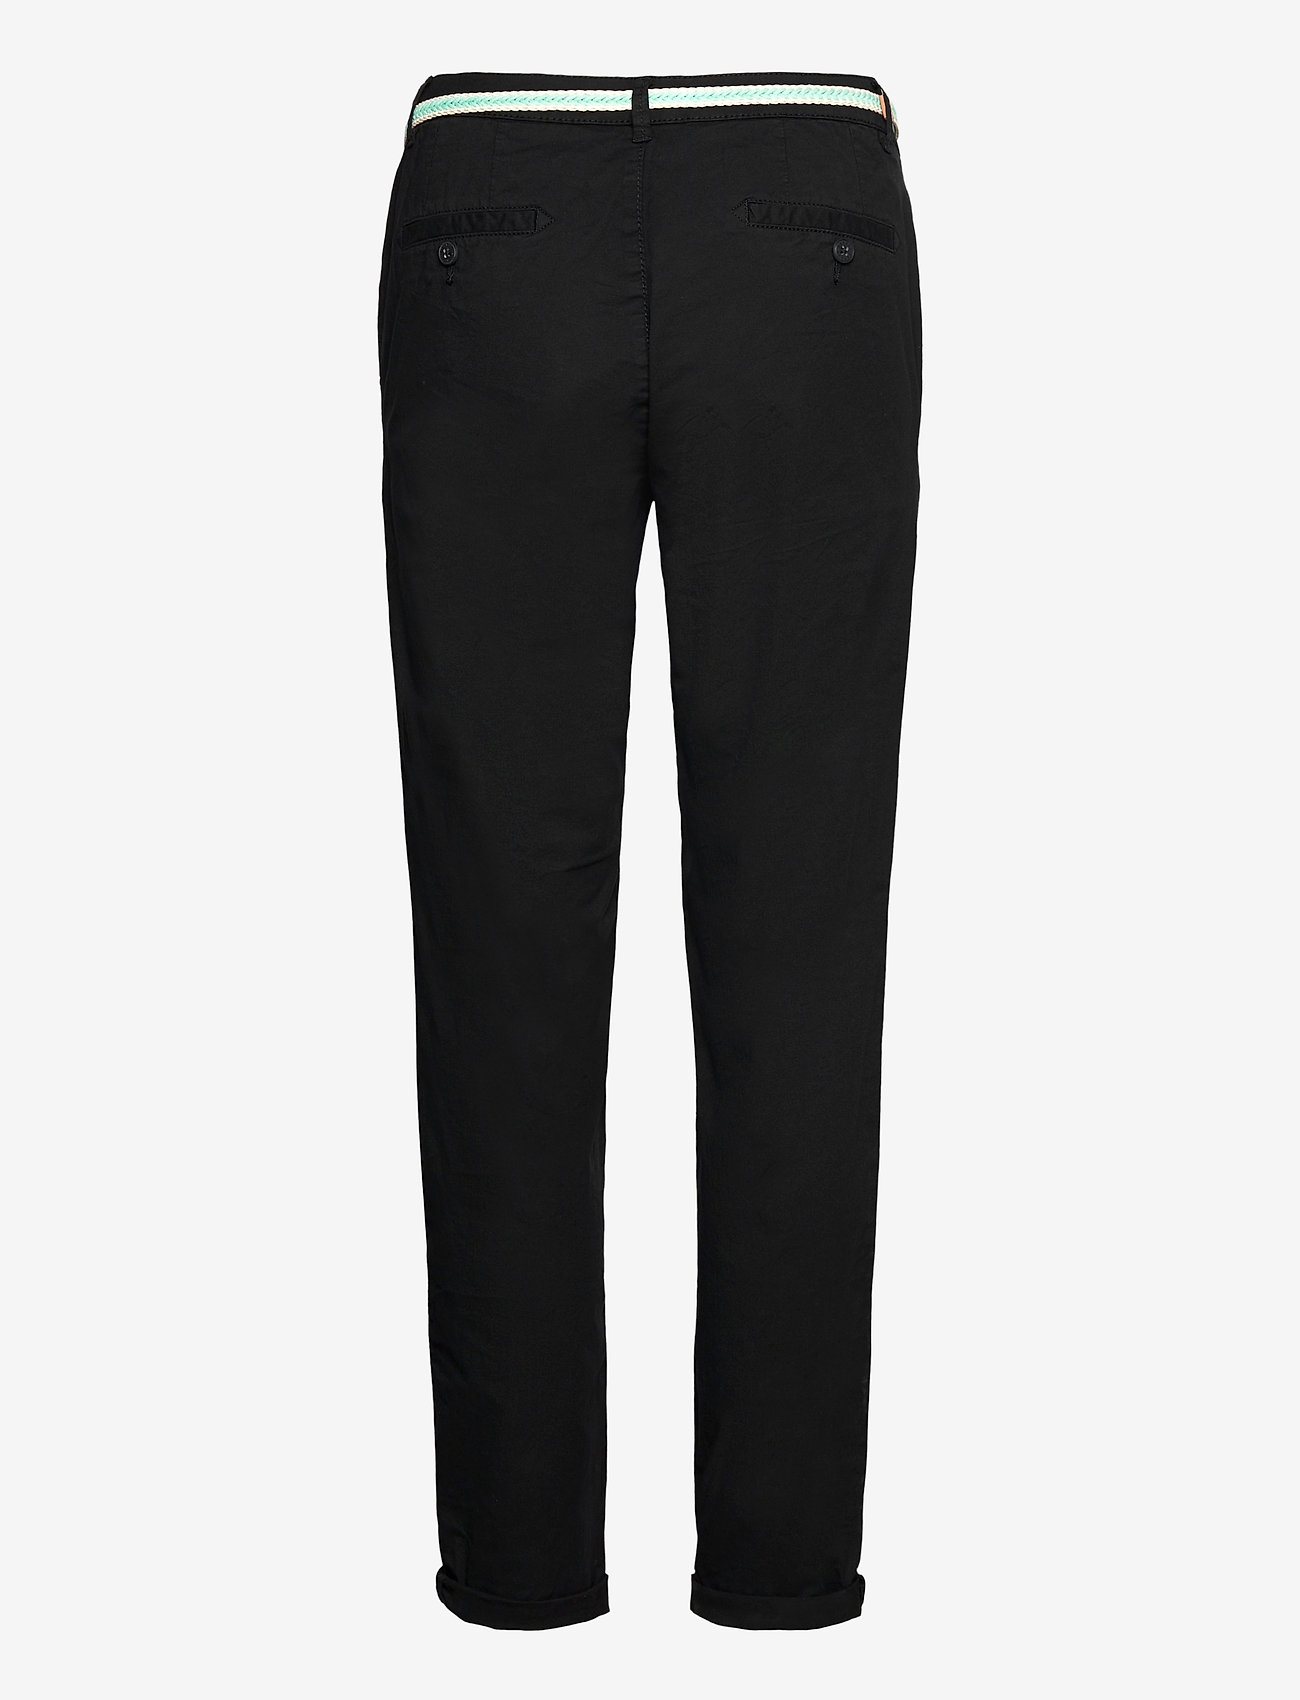 Esprit Casual - Pants woven - chinos - black - 1